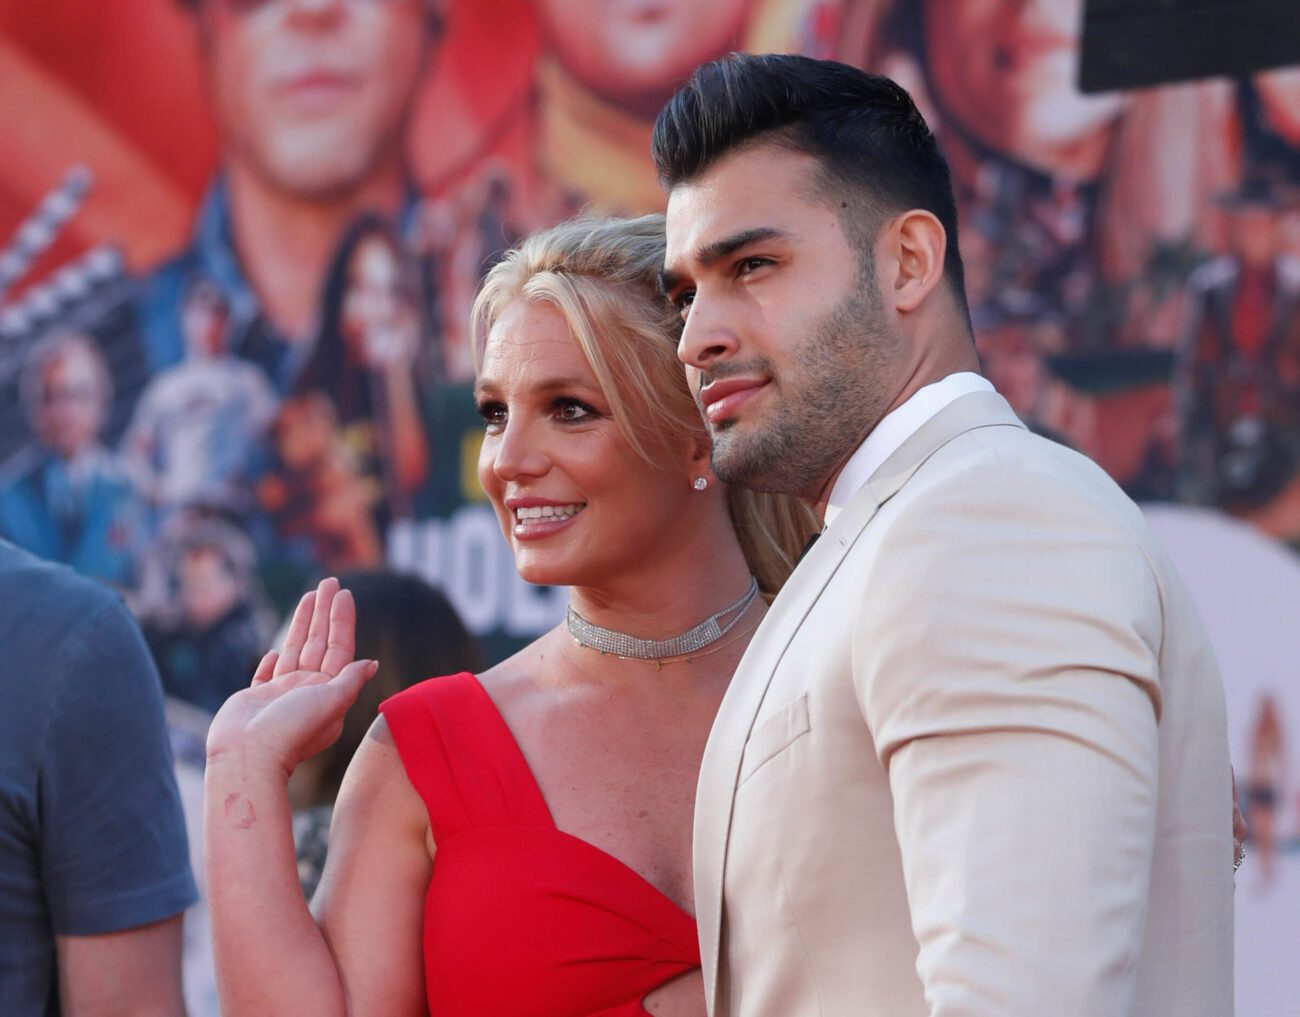 """After Britney Spears and Sam Asghari got engaged, Octavia Spencer had some sage advice. See why friends and fans are shouting """"we want prenup""""!"""